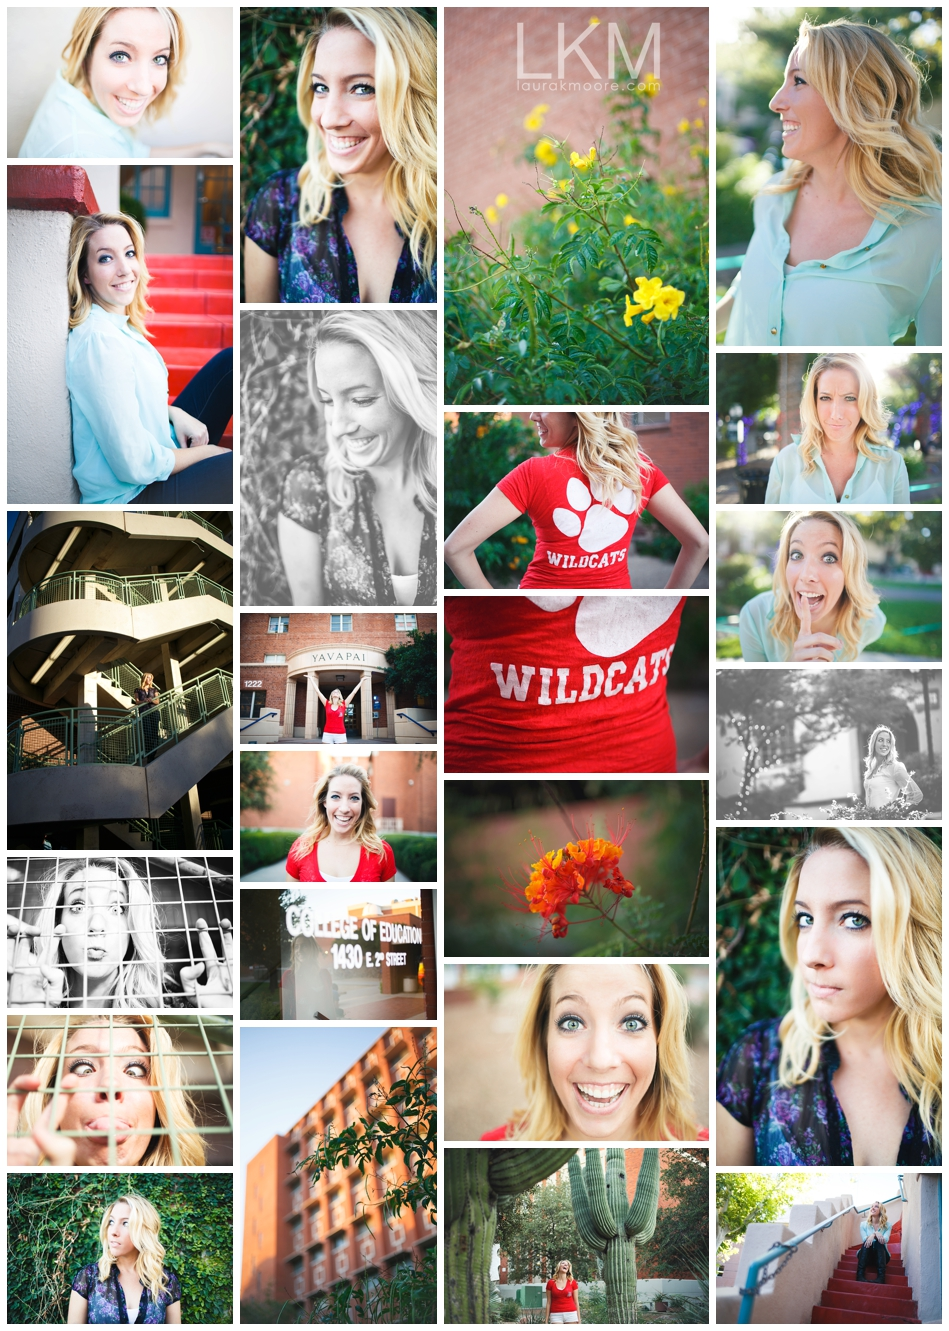 university-of-arizona-senior-portrait-session-laura-k-moore-photography.jpg